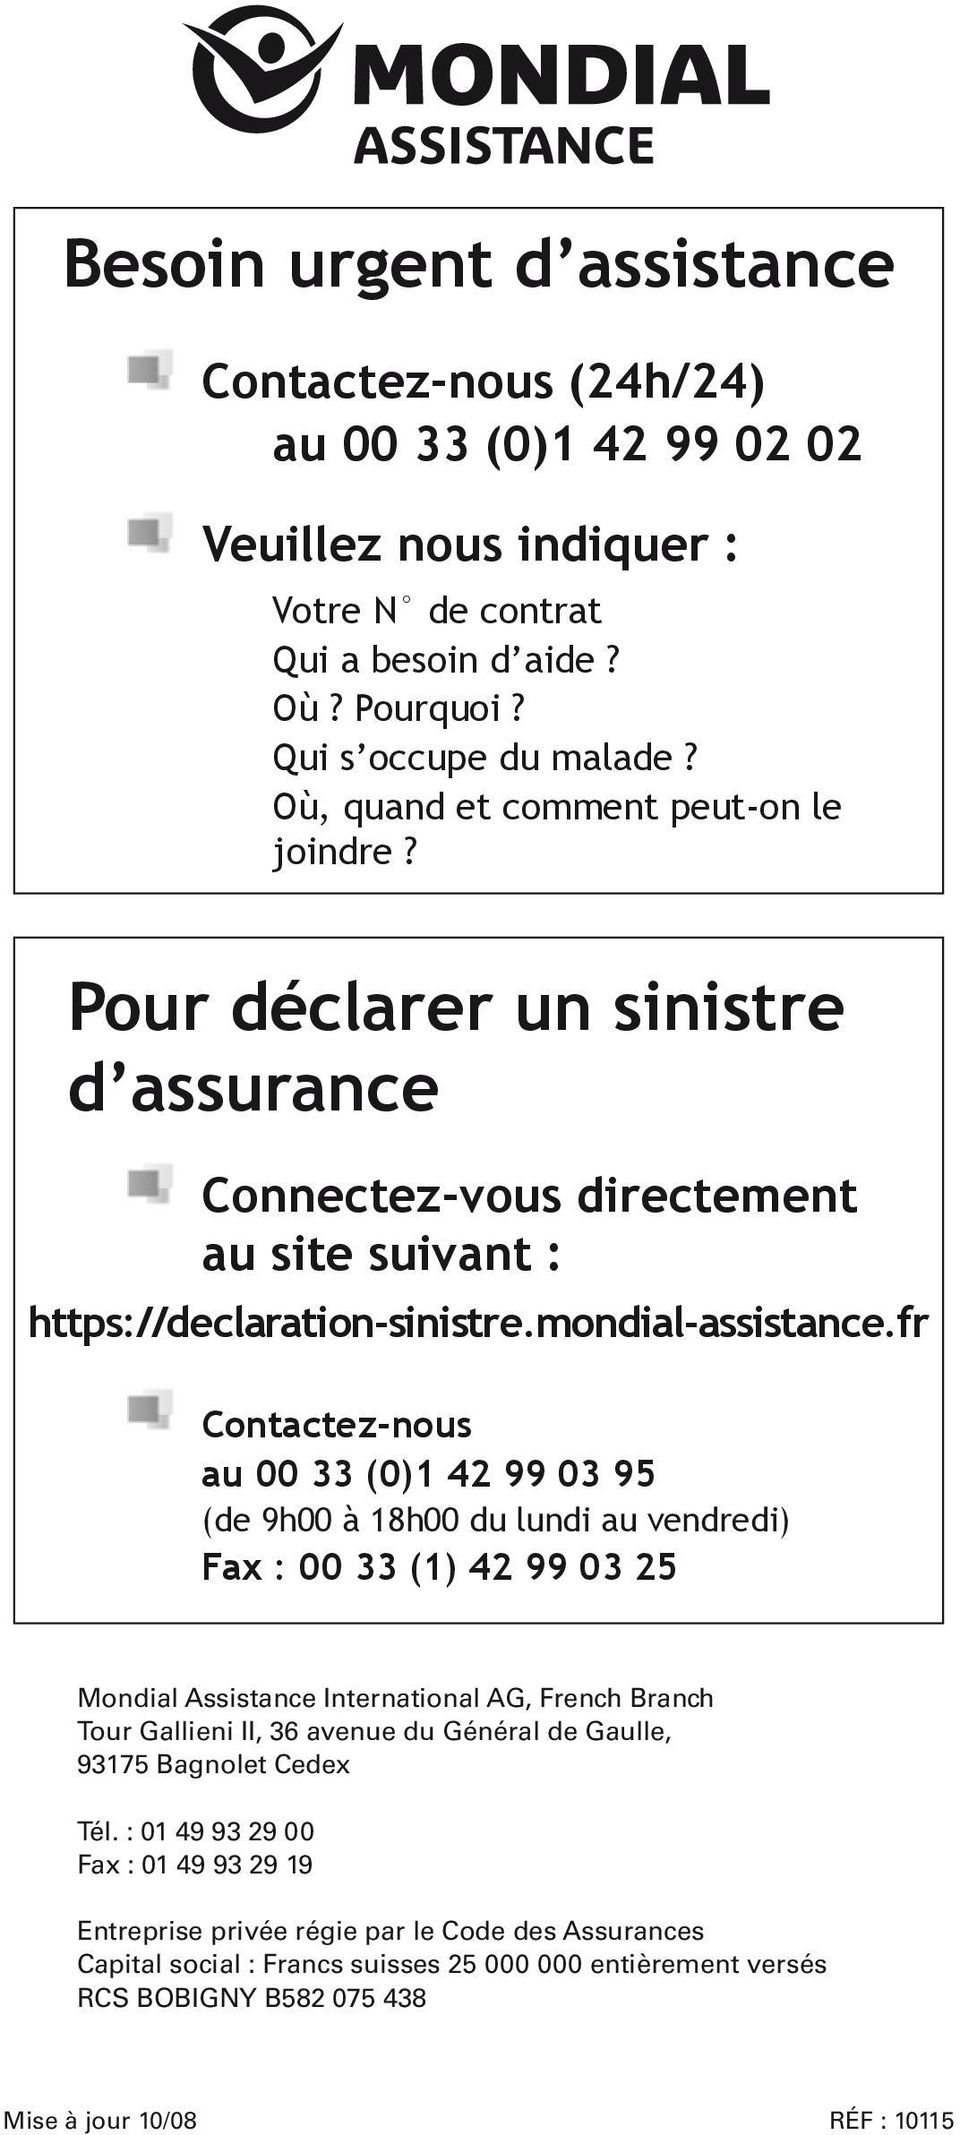 fr Contactez-nous au 00 33 (0)1 42 99 03 95 (de 9h00 à 18h00 du lundi au vendredi) Fax : 00 33 (1) 42 99 03 25 Mondial Assistance International AG, French Branch Tour Gallieni II, 36 avenue du